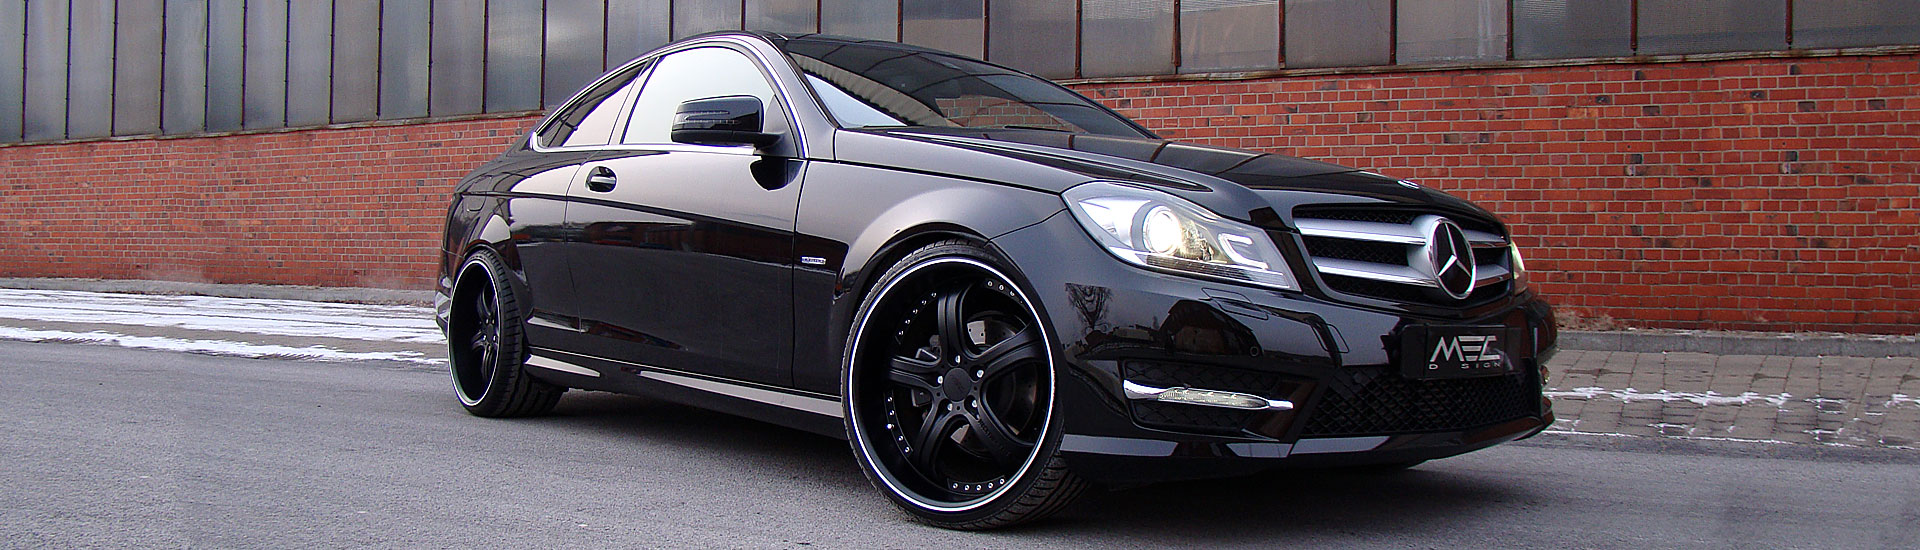 Mec Design Tuning And Modification For Your Mercedes W204